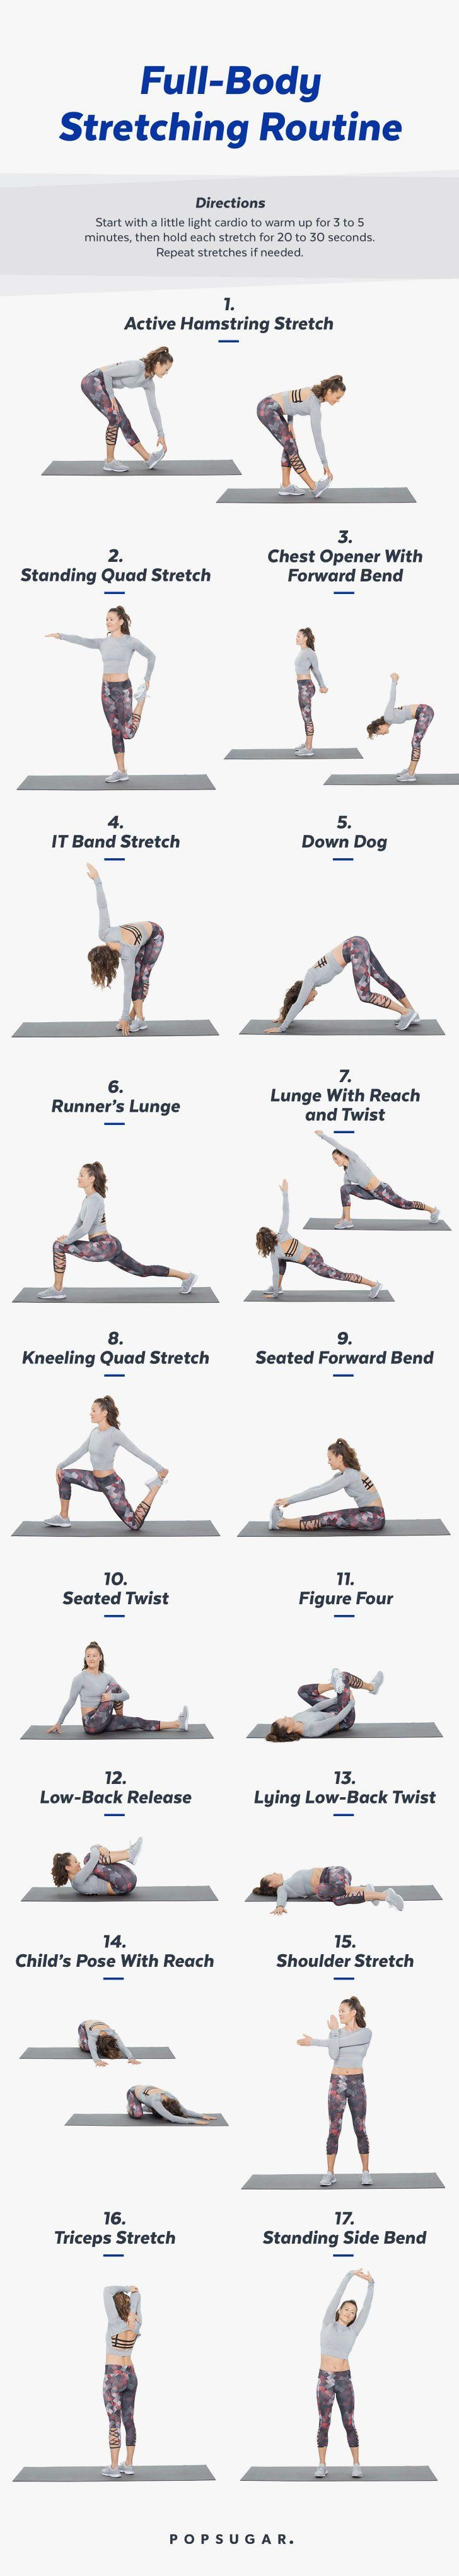 Stretch, Recover, Relax: This Is How to Handle a Rest Day -> für Pilates Sonder…